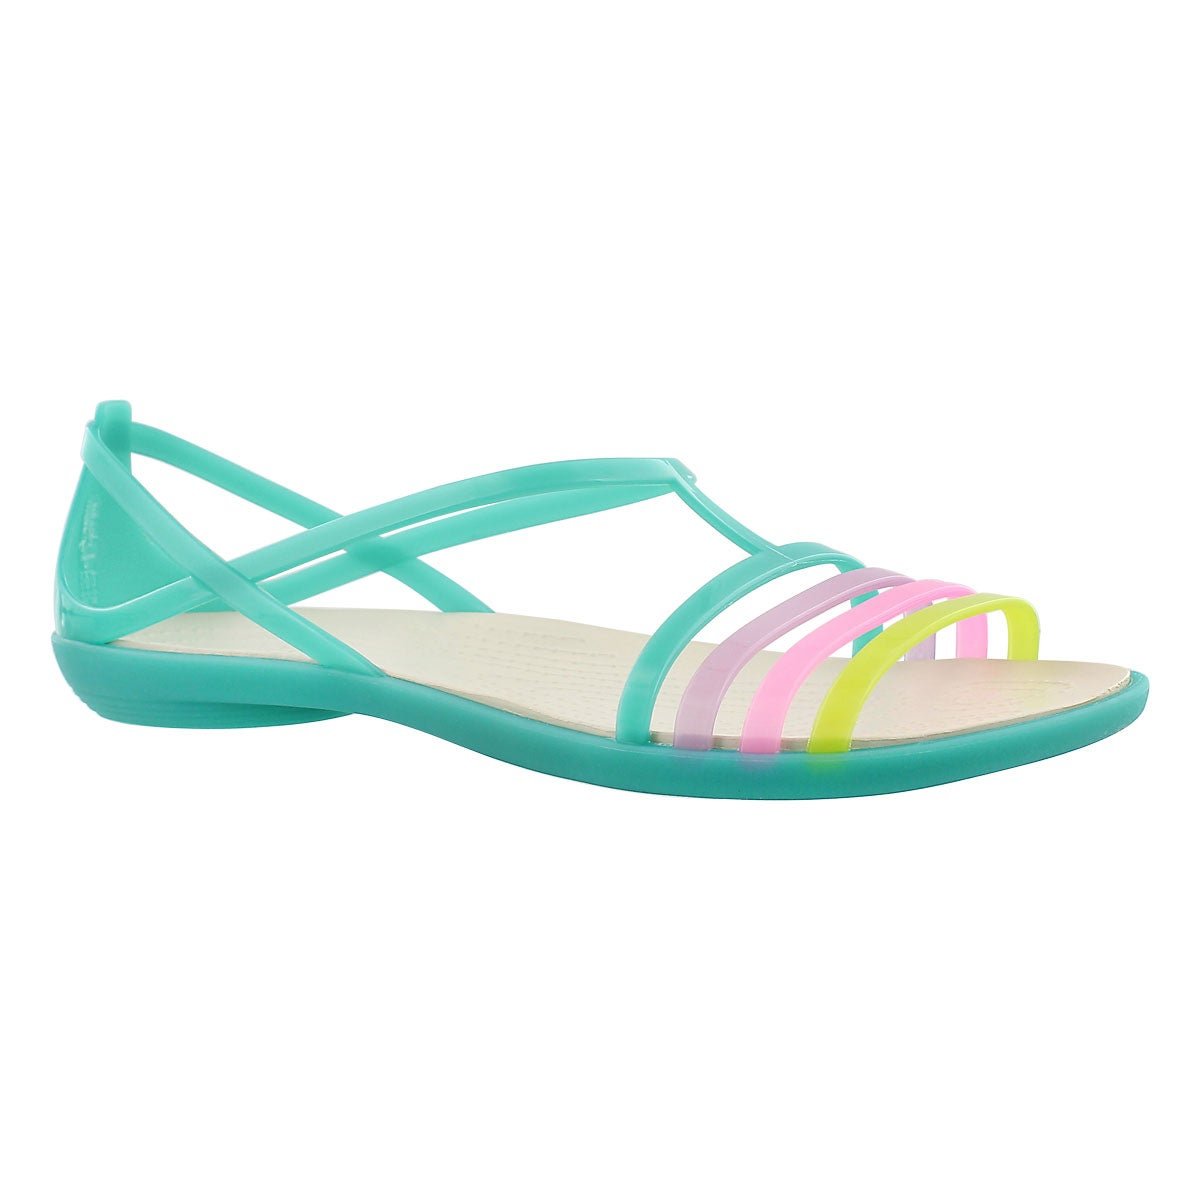 Women's ISABELLA green sandals